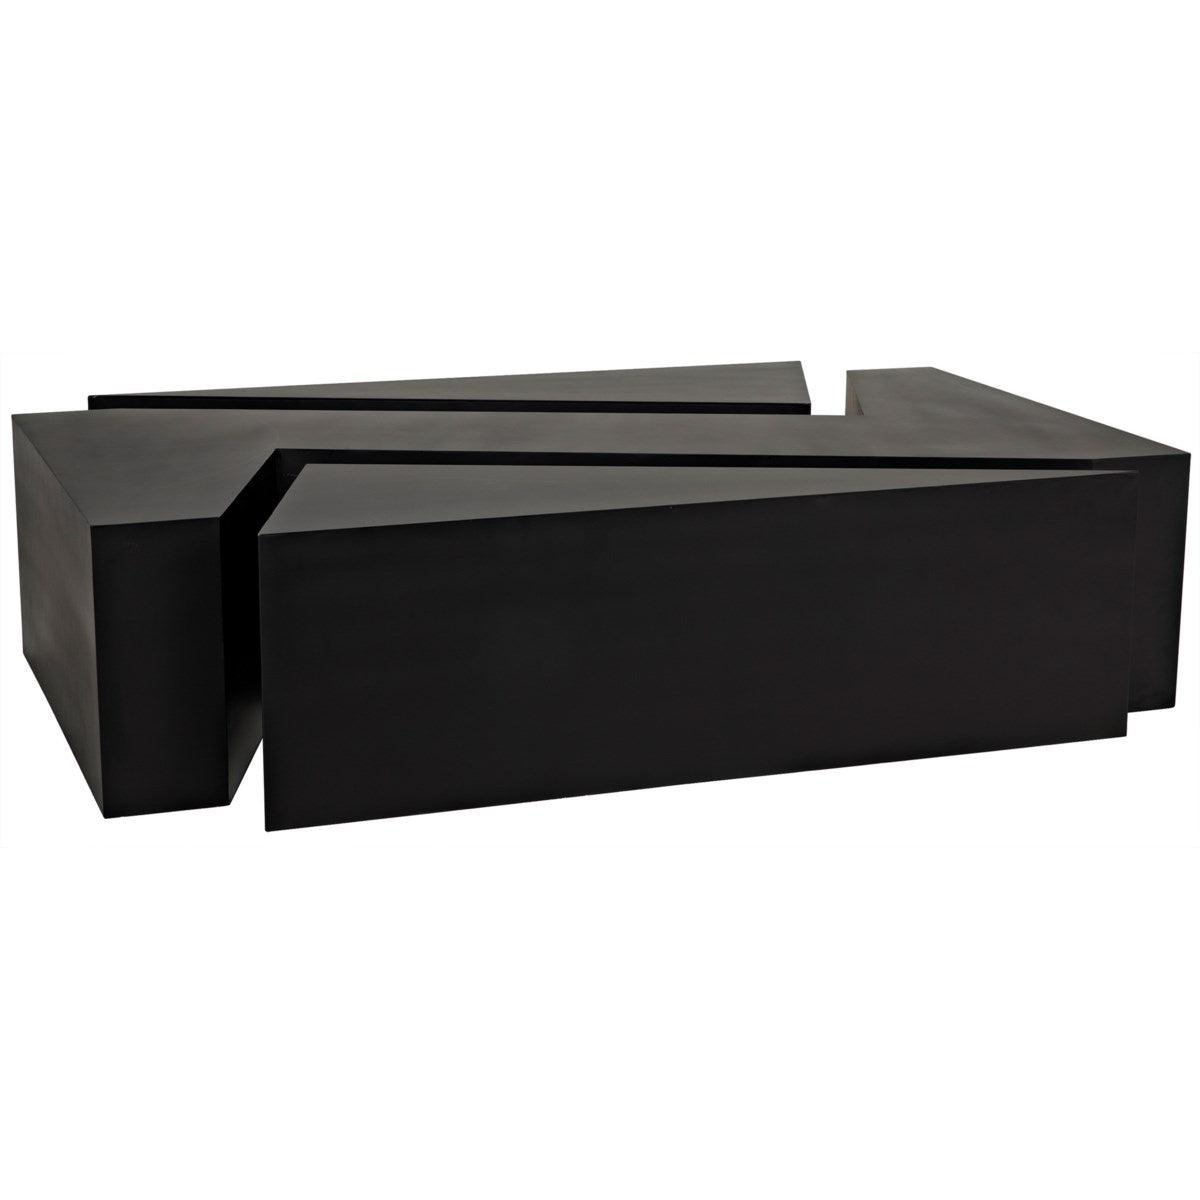 Noir Furniture Element Coffee Table, Black Metal-Noir Furniture-Blue Hand Home